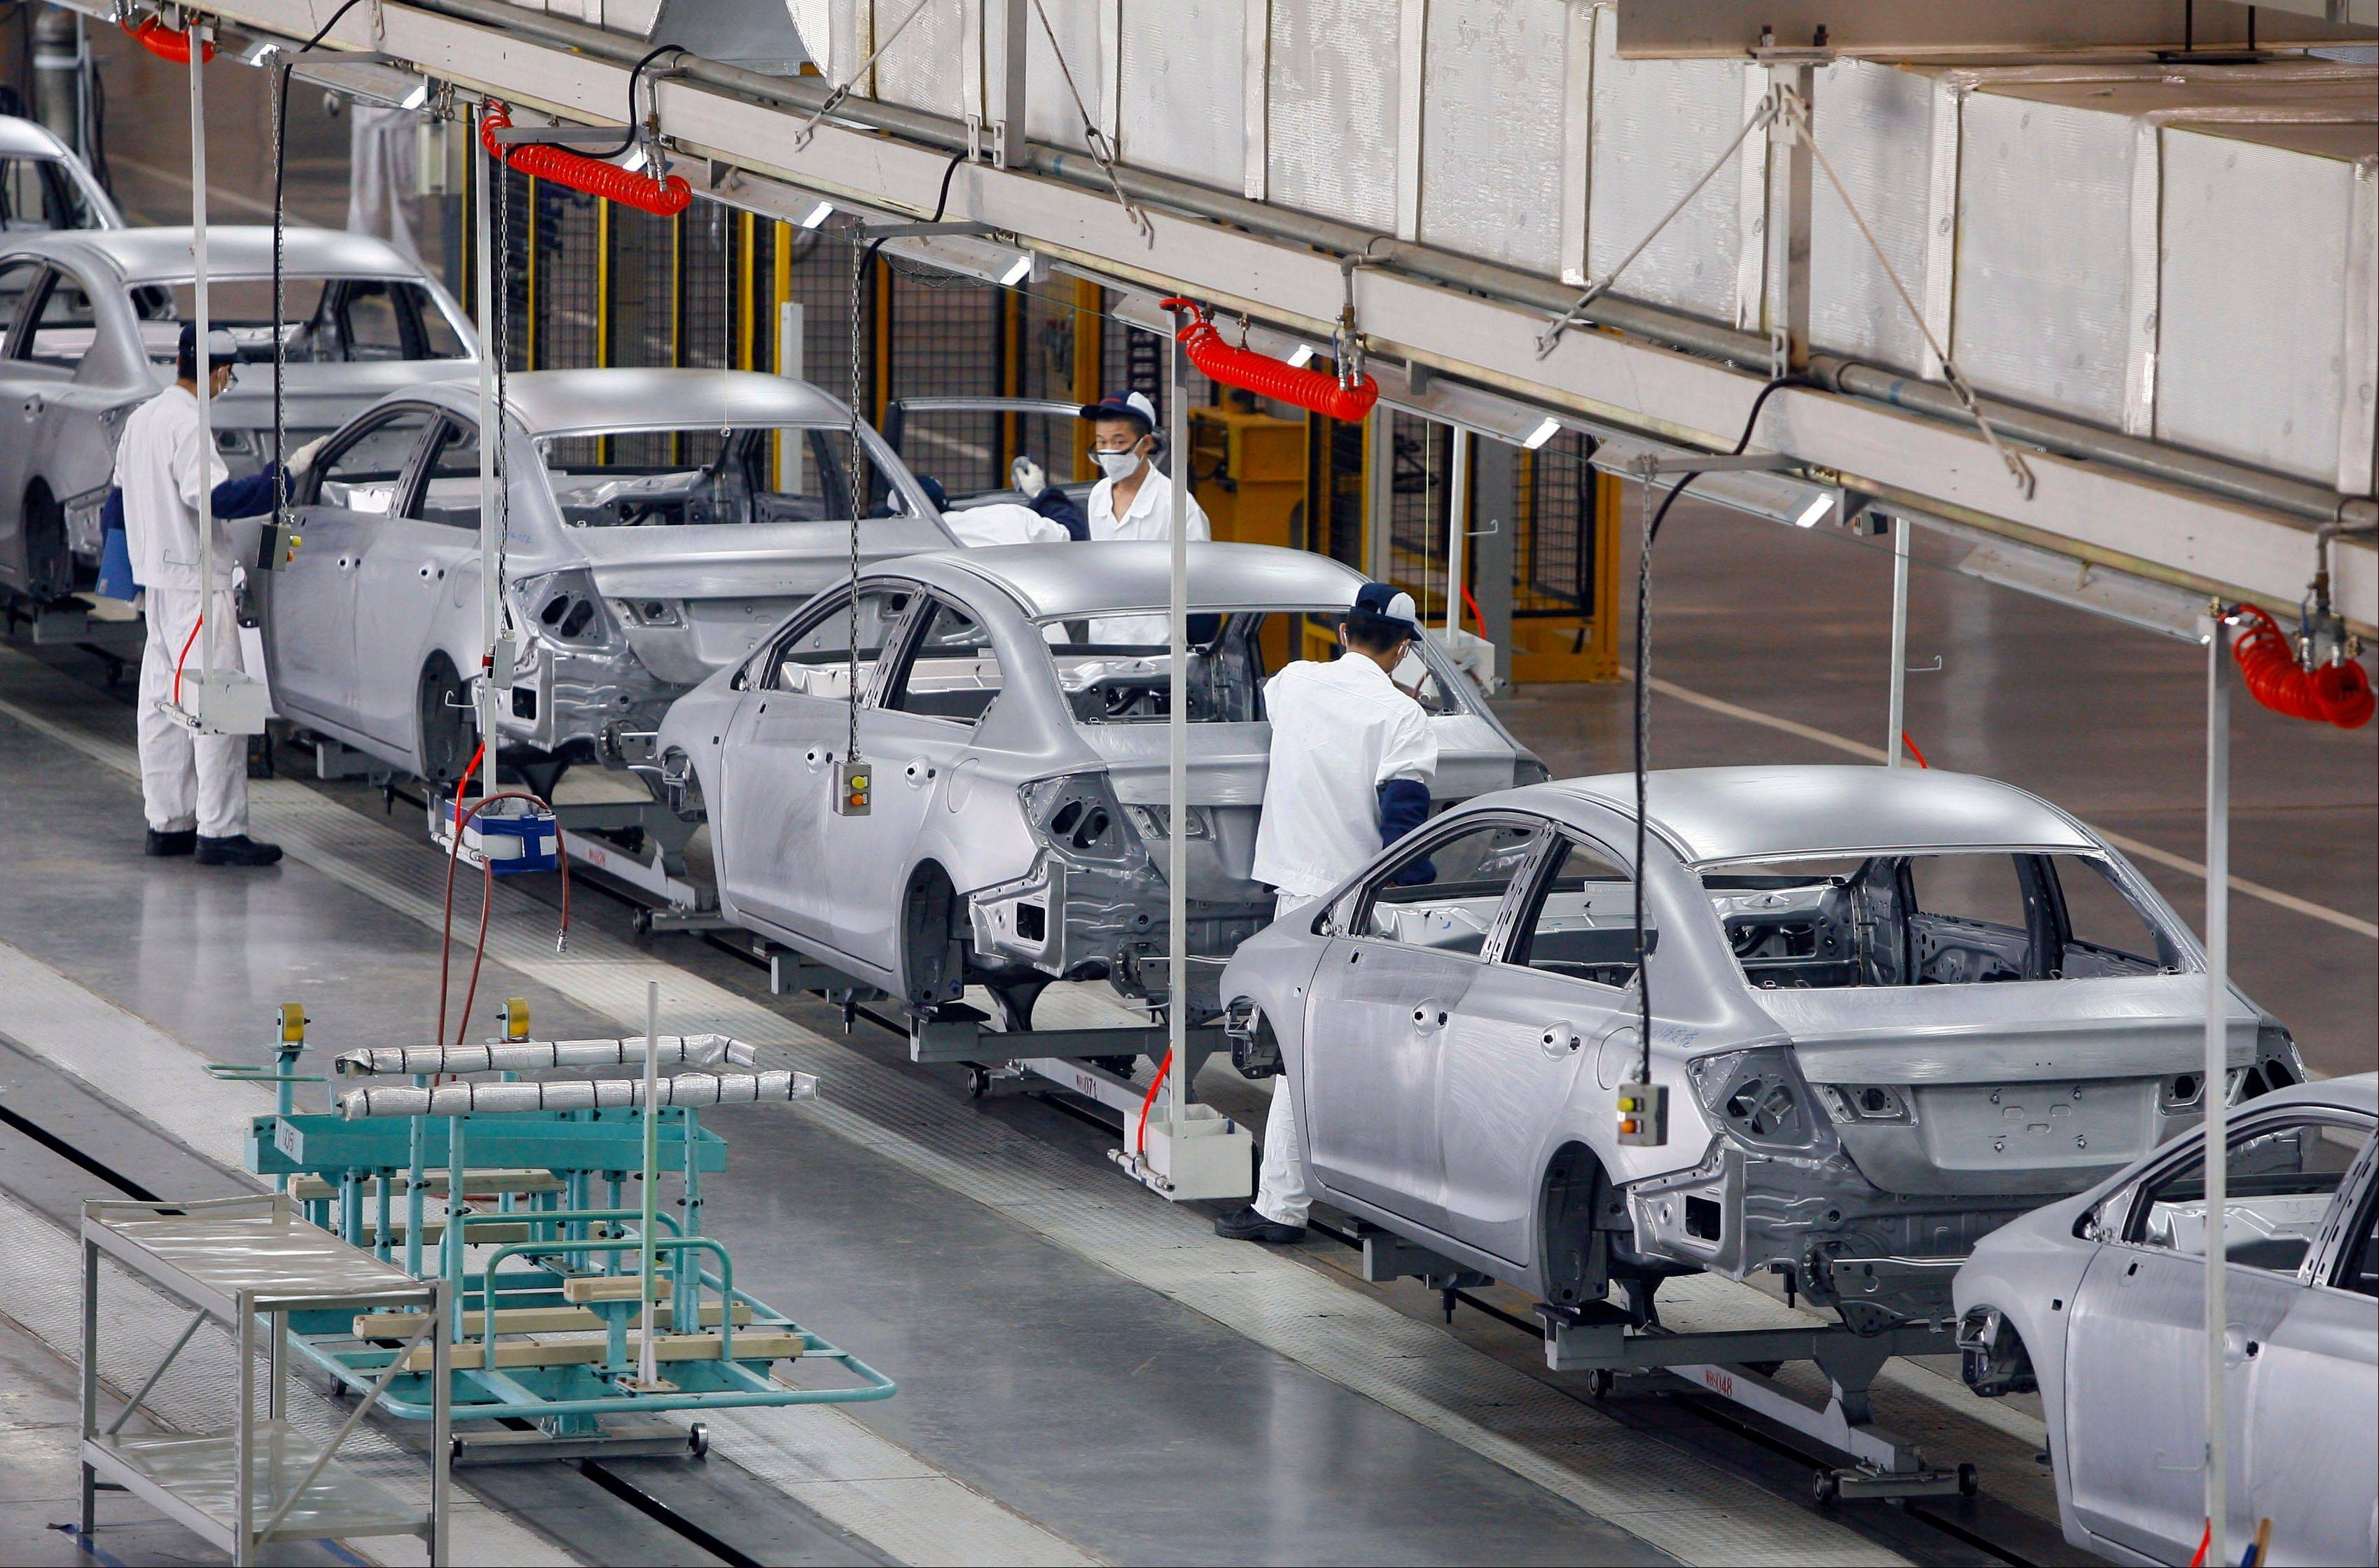 Chinese workers assemble cars at a plant of Dongfeng Honda, a joint venture between China's Dongfeng Motor and Japan's Honda Motor in Wuhan in central China's Hubei province.